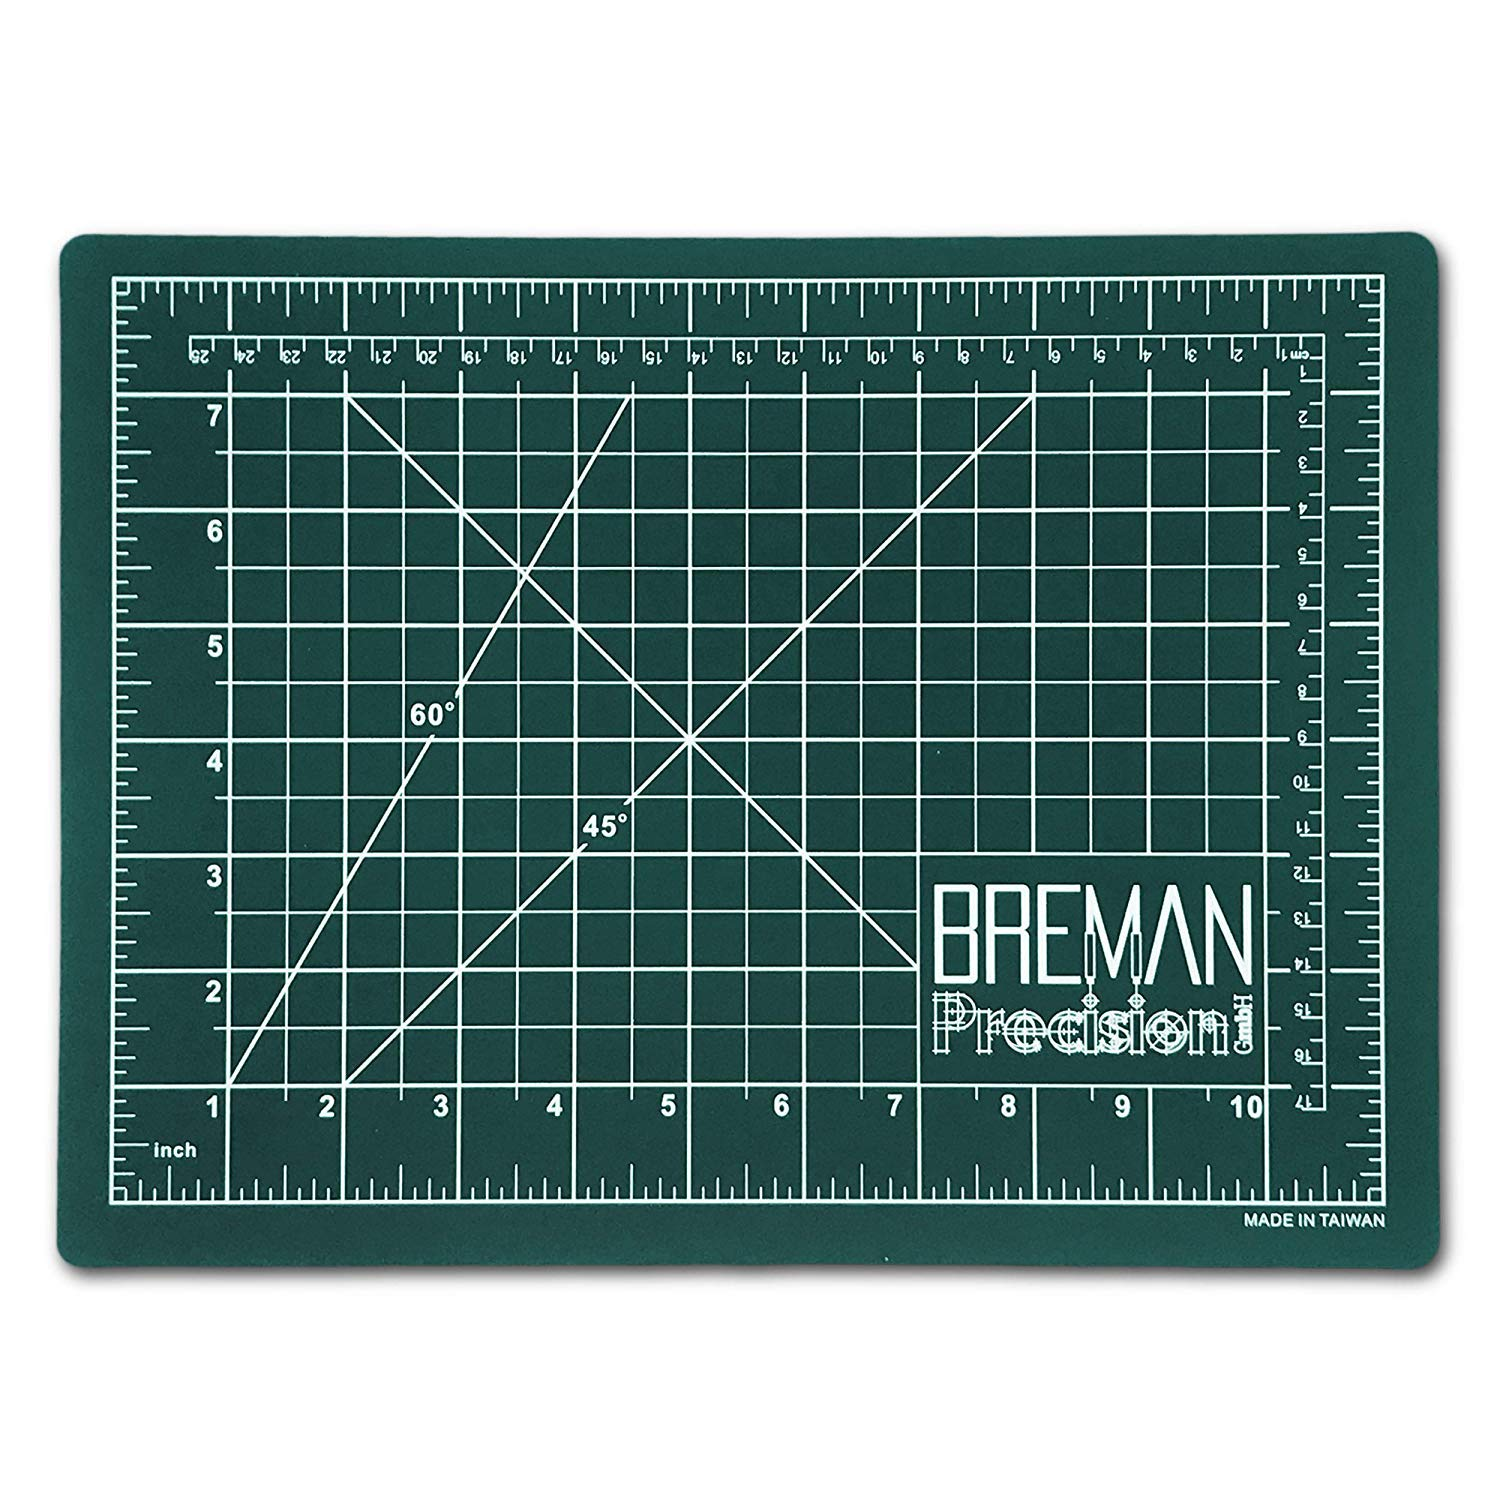 Breman Precision Self Healing Cutting Mat | Sewing Craft Quilting Fabric Rotary Cutting Mat for Crafters Hobbyists Artists | 2-Sided 5-Ply PVC Craft Mat with Grid Lines, Black/Green Sides (A2,18x24in)